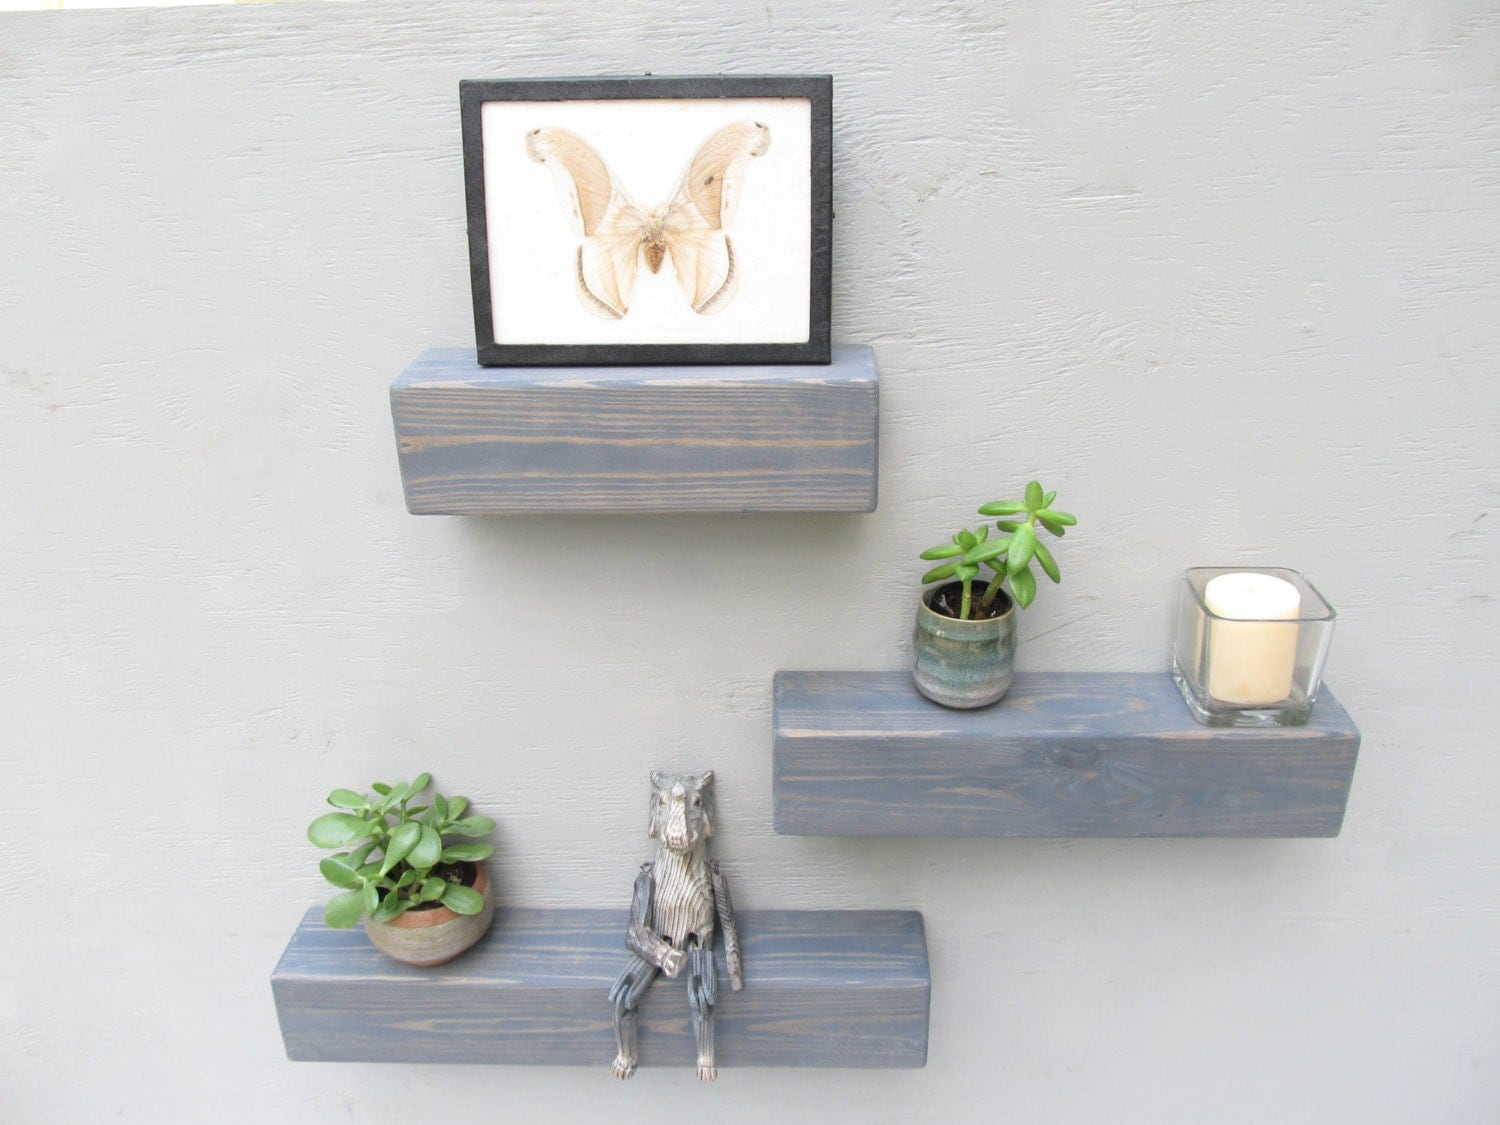 Floating Shelves Bathroom Decor : Floating shelves wall shelf bathroom decor modern